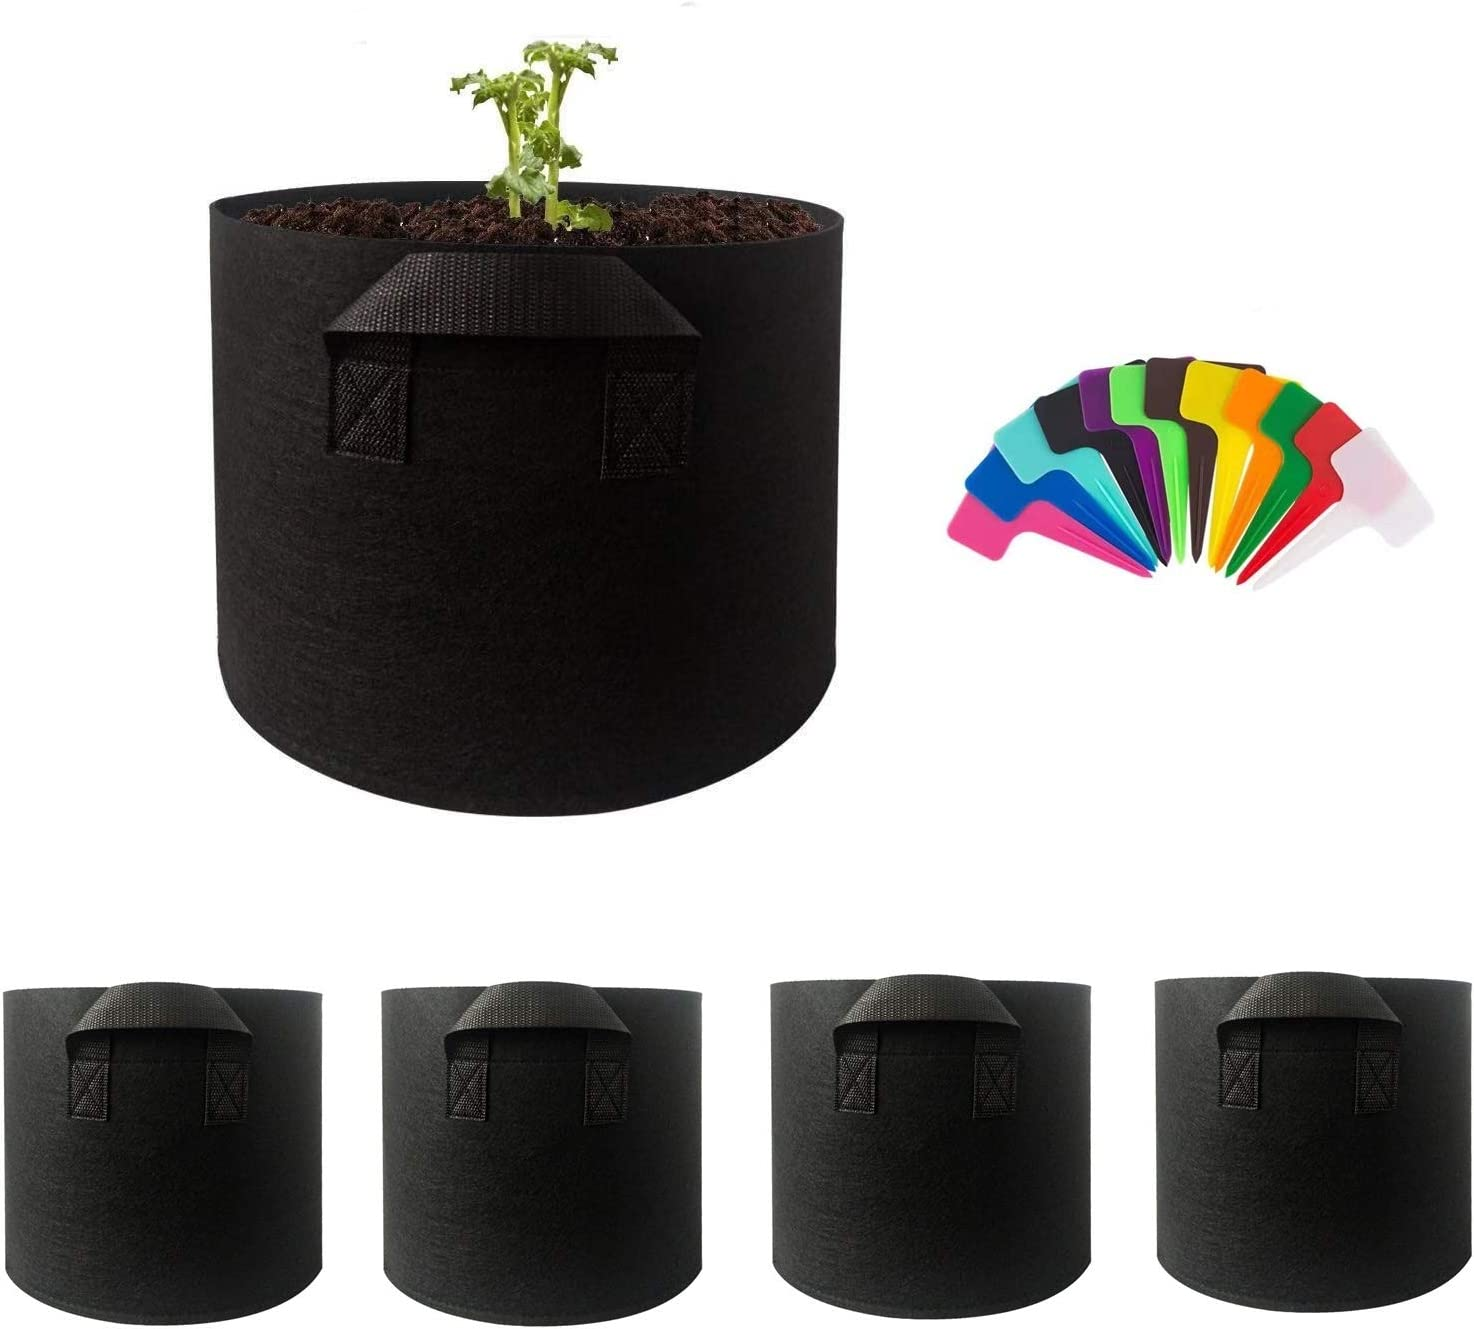 5 Gallon Grow Bags 5 Pack- Heavy Duty Aeration Fabric Pots with Handles and Plant Grow Bags Labels, Potato Grow Bag for Vegetables and Flowers